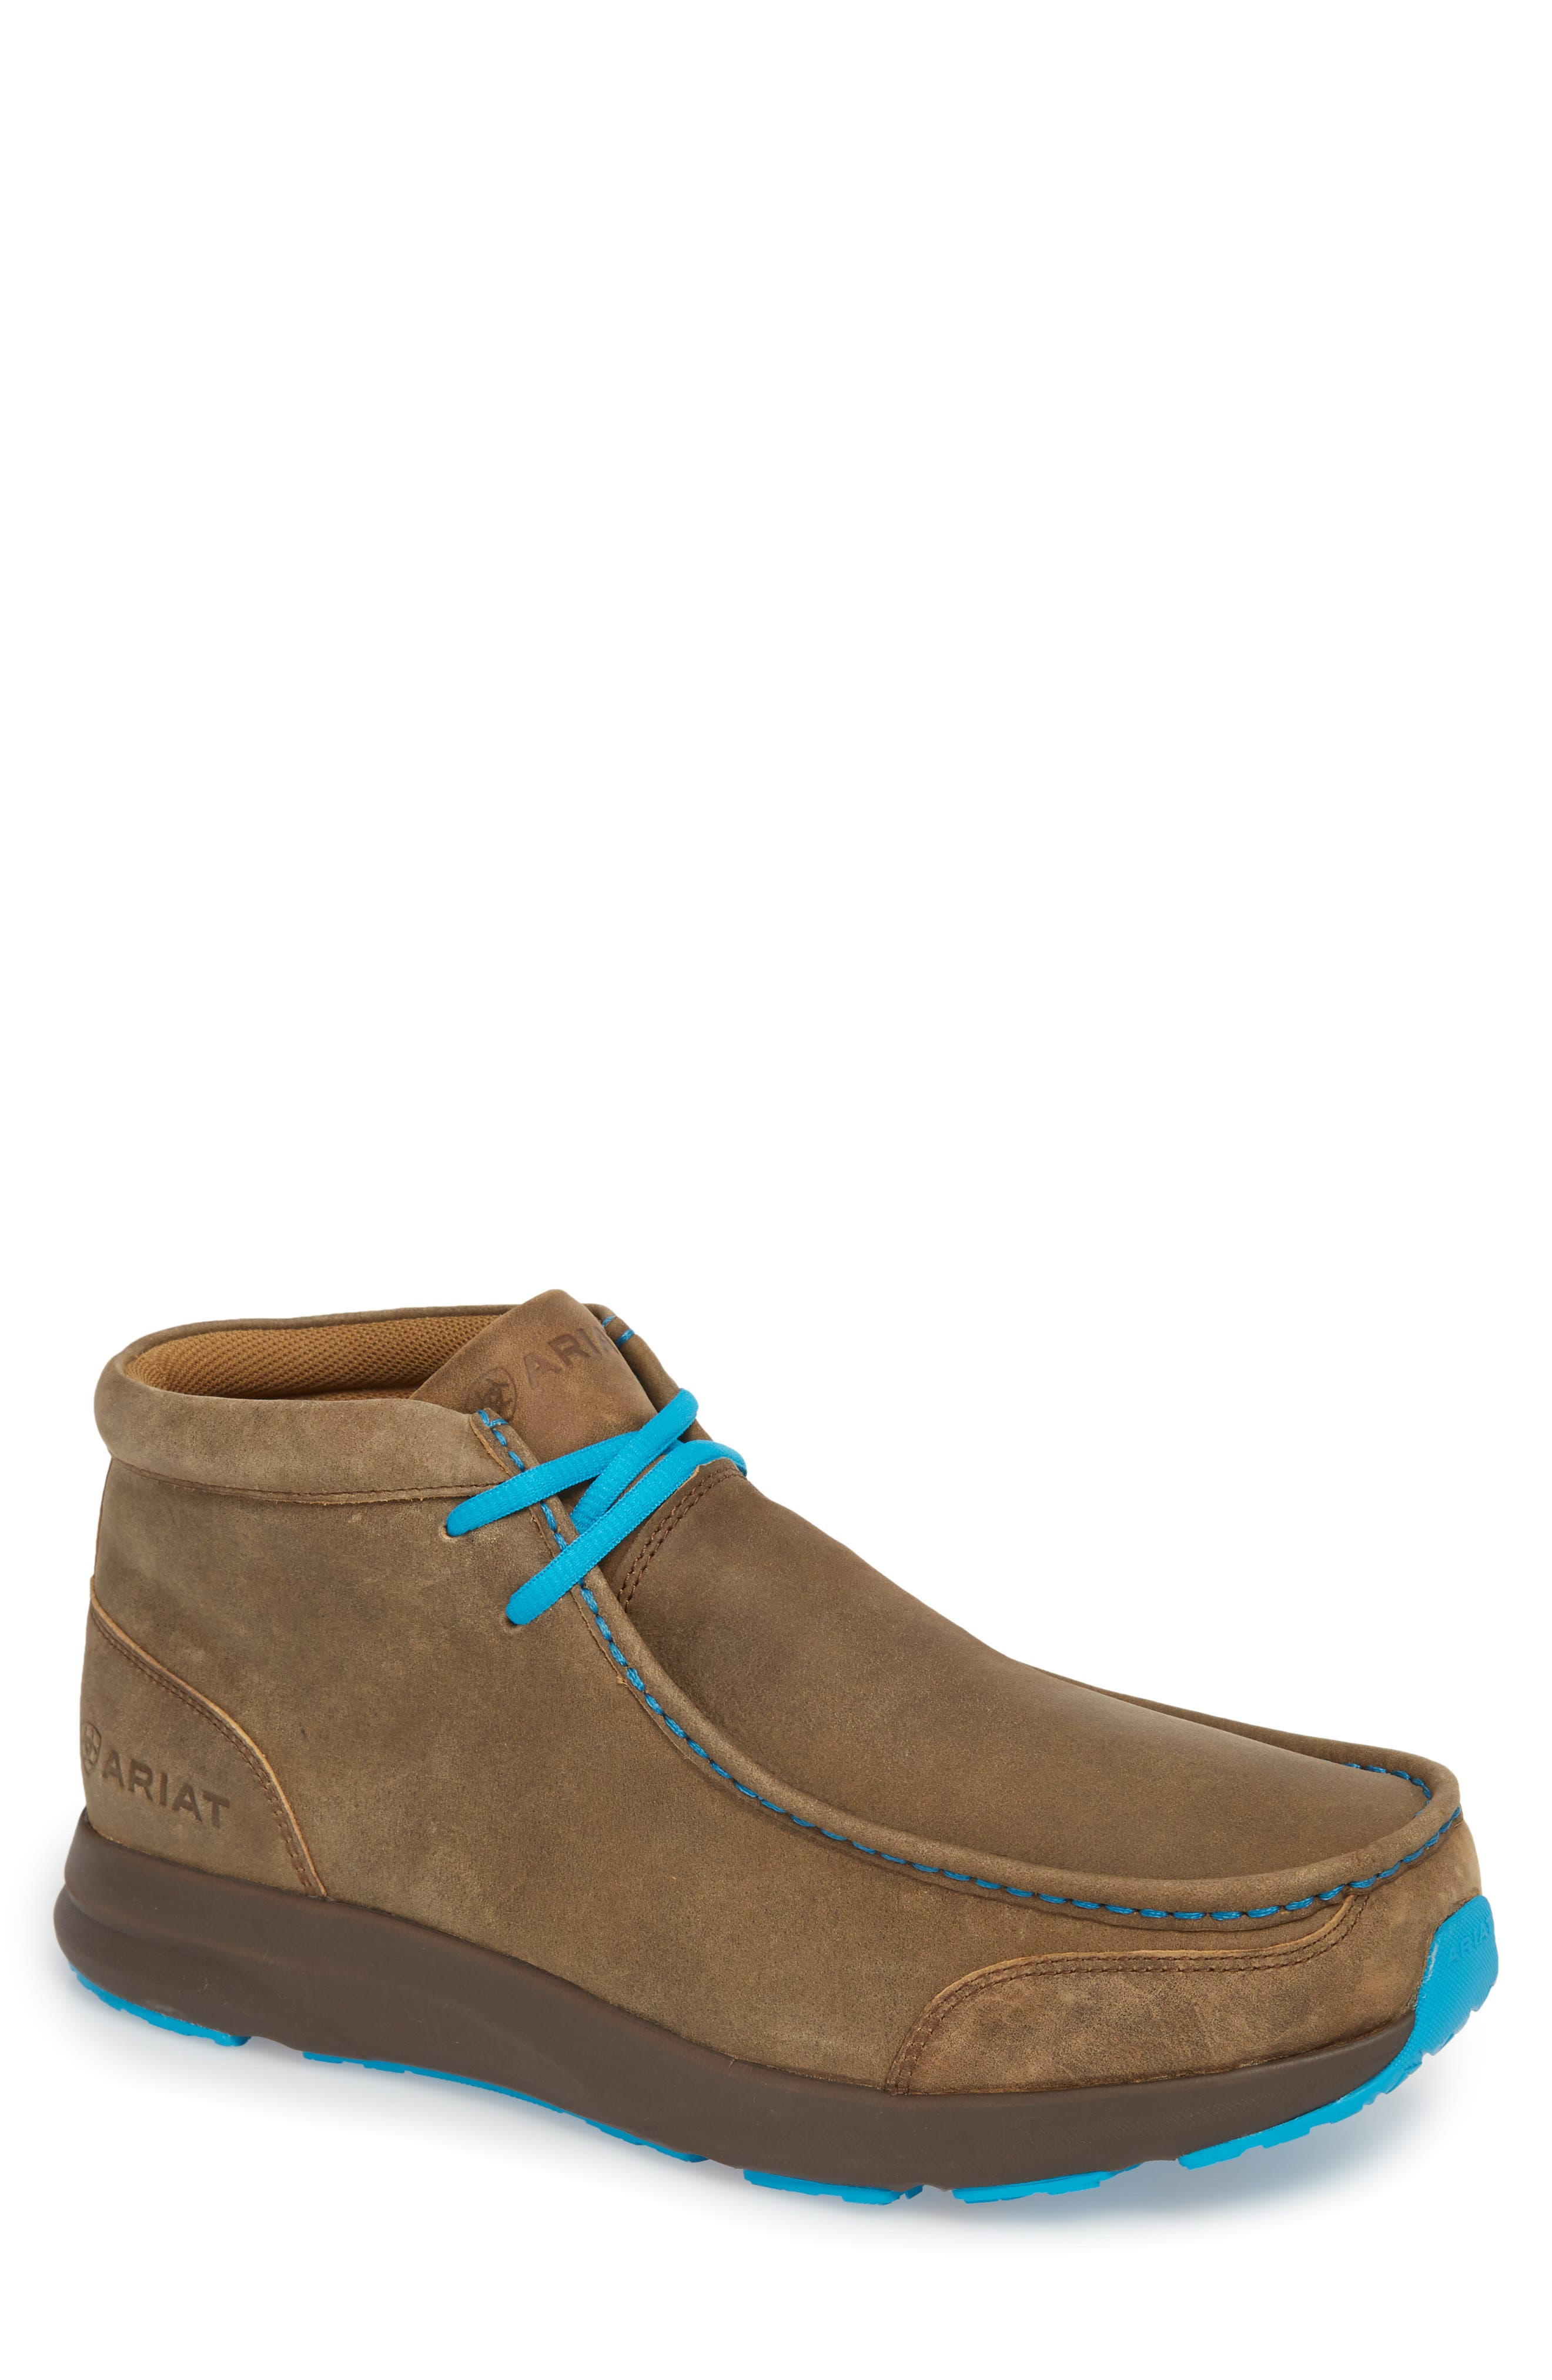 ARIAT, Spitfire Chukka Boot, Main thumbnail 1, color, BROWN BOMBER/ BLUE LEATHER